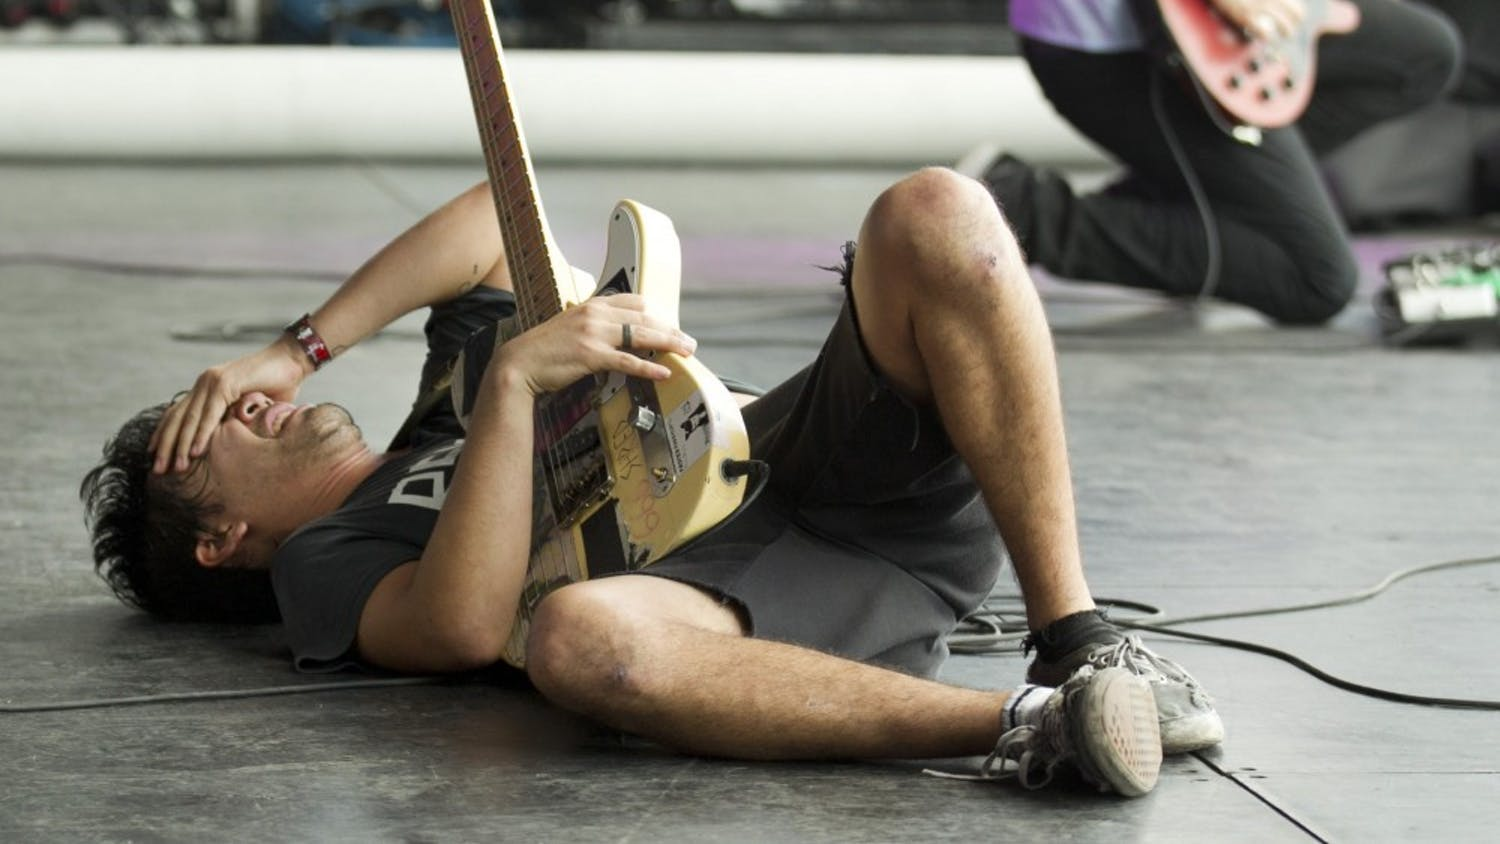 Zac Carper, of the Los Angeles skate punk band FIDLAR, falls to the stage near the end of his set at the Austin City Limits Music Festival in Austin, Texas in October 2013. (Jay Janner//Austin American-Statesman)